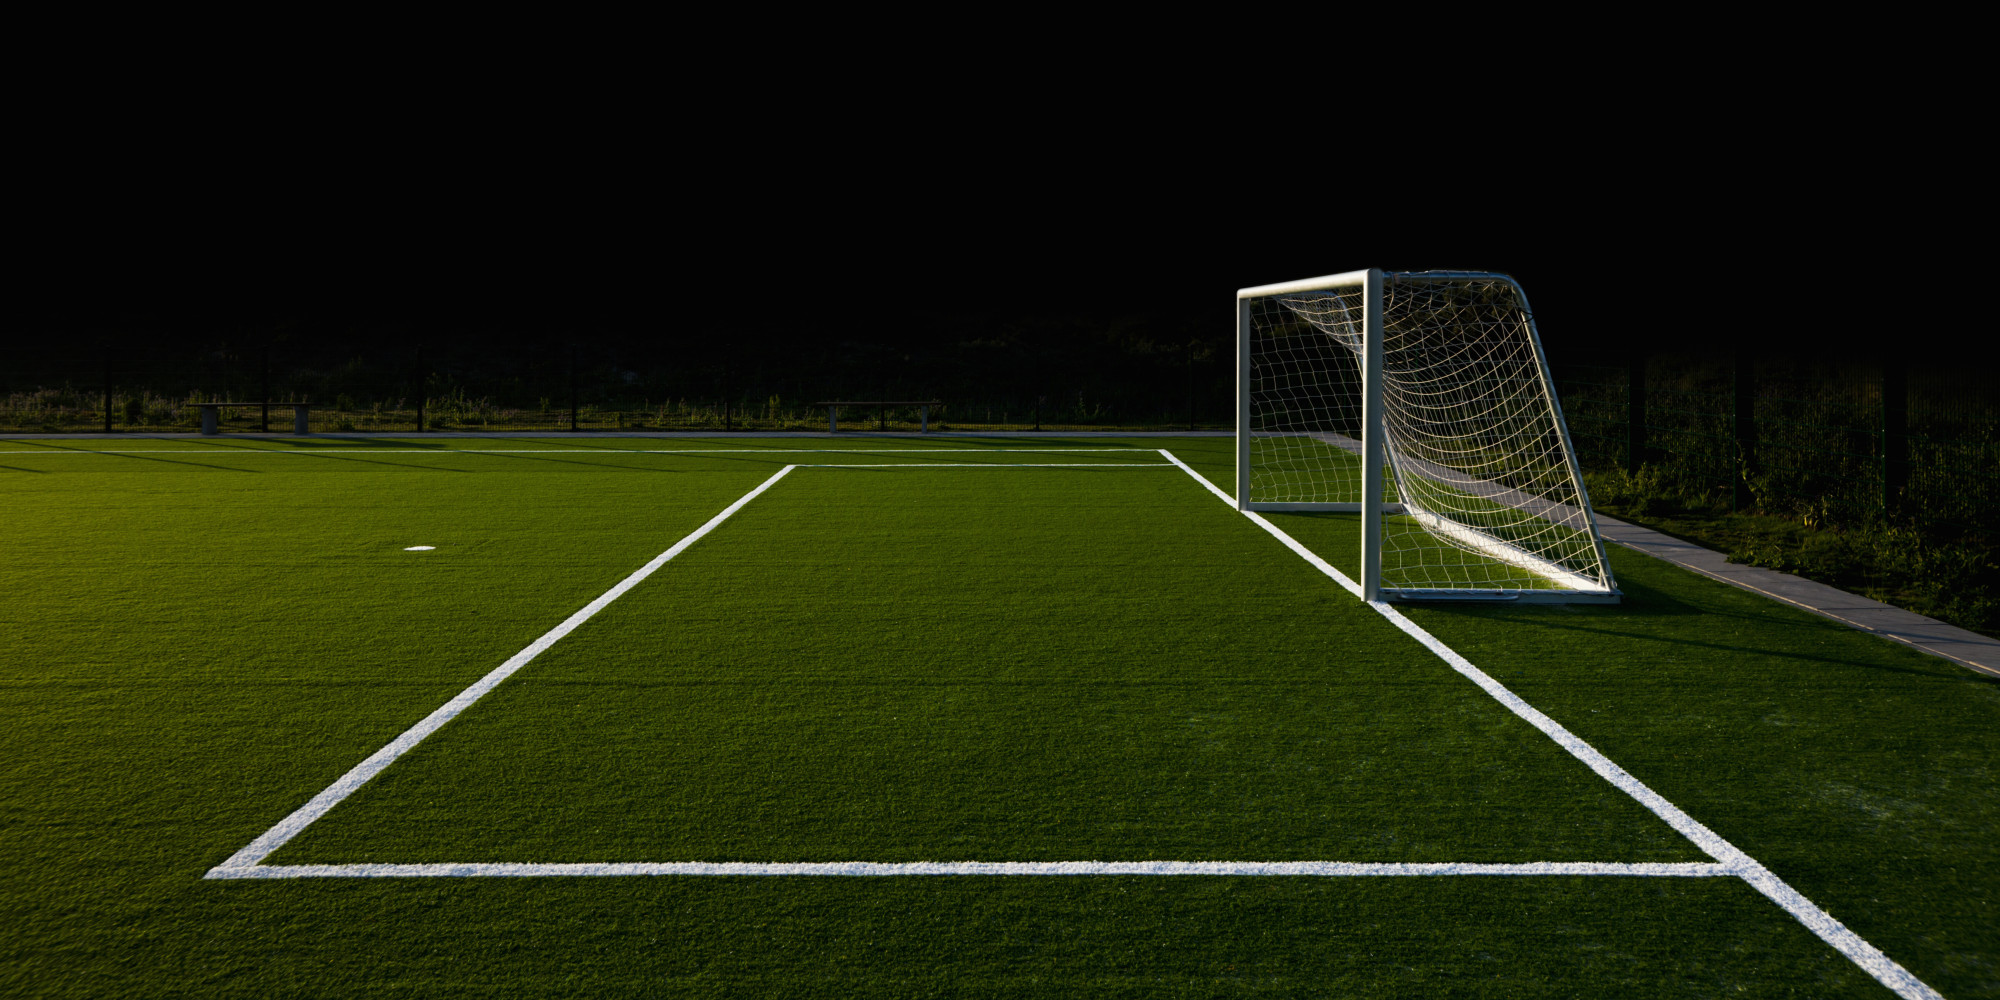 Soccer Field Background With Goal 64652 | DFILES